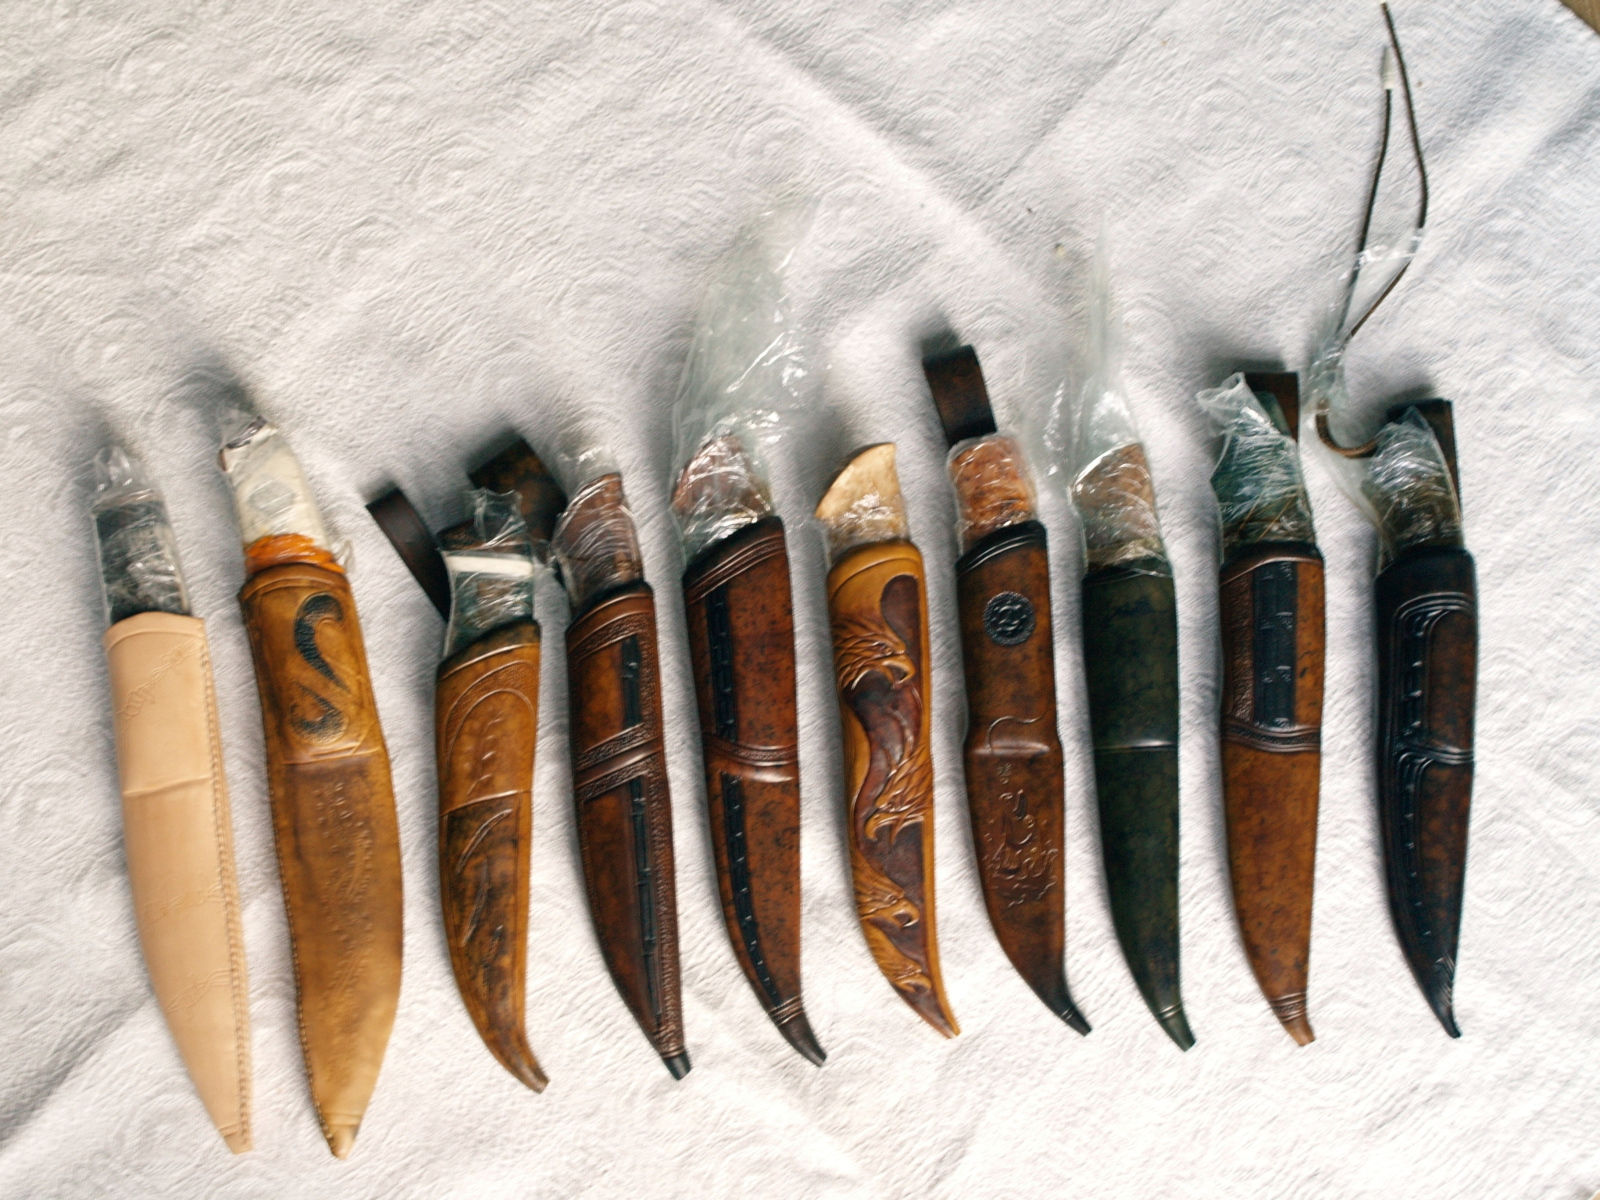 Knives at Wärdshuset